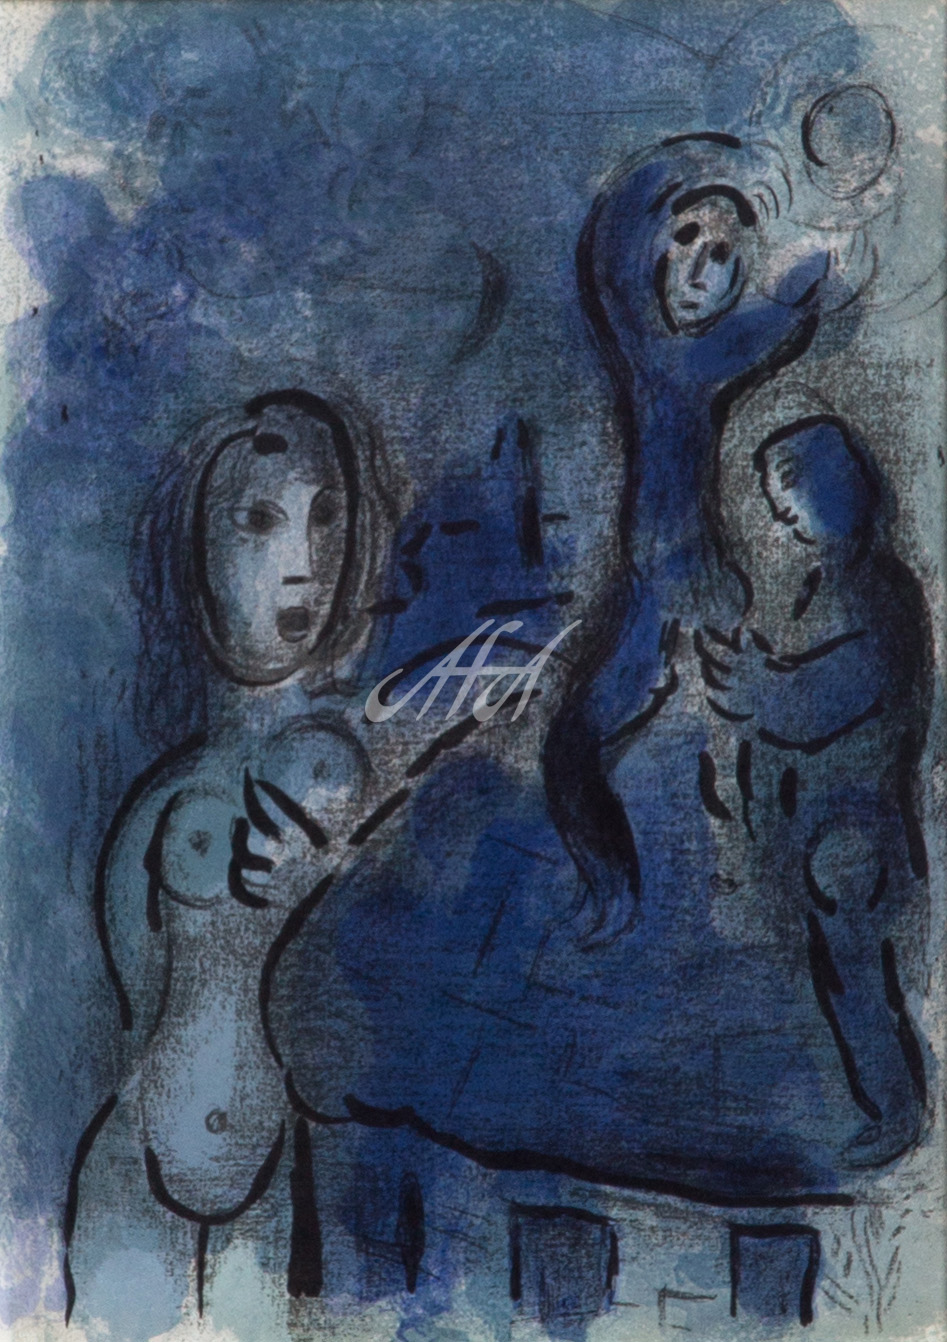 Marc_Chagall_figurative7 LoRes watermark.jpg